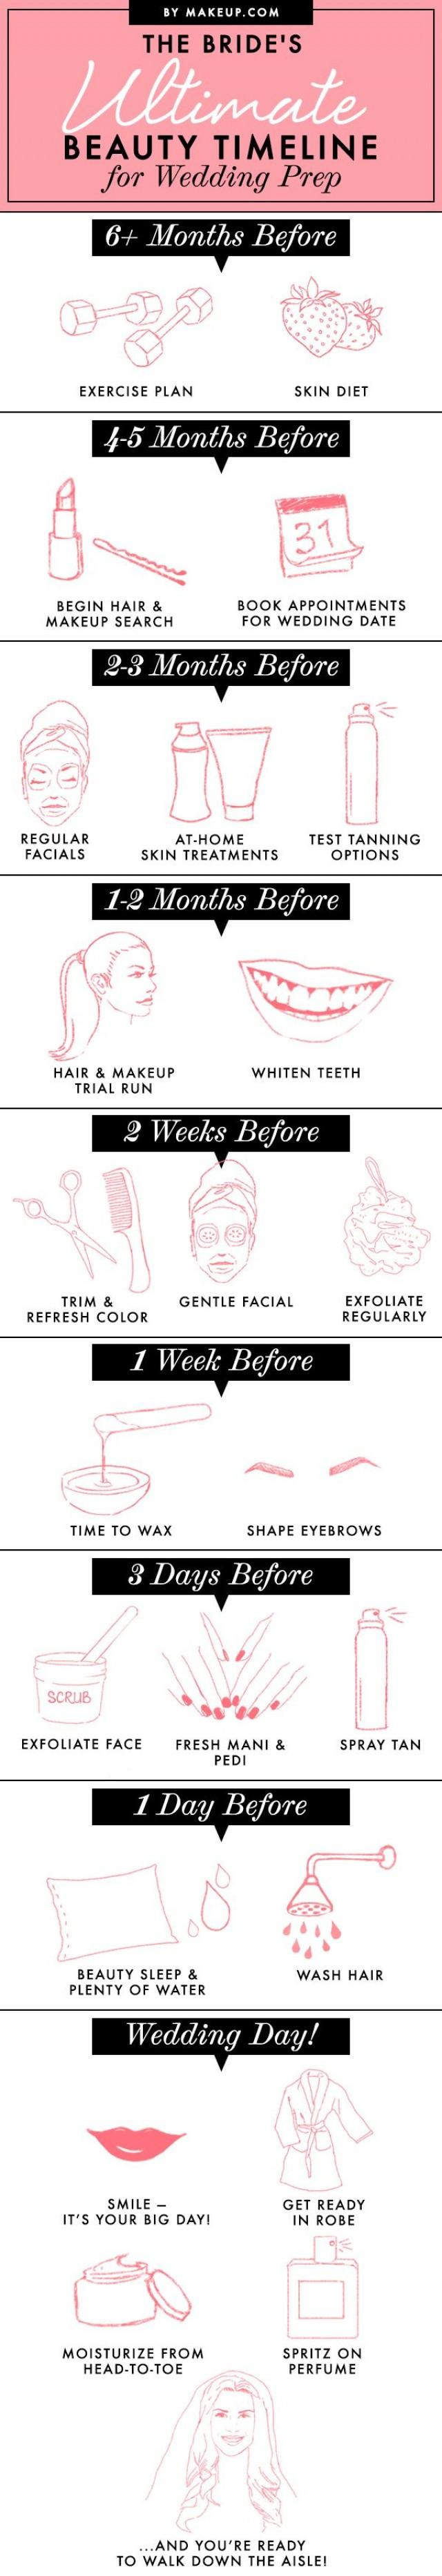 The Brides Ultimate Beauty Timeline For Wedding Prep ...